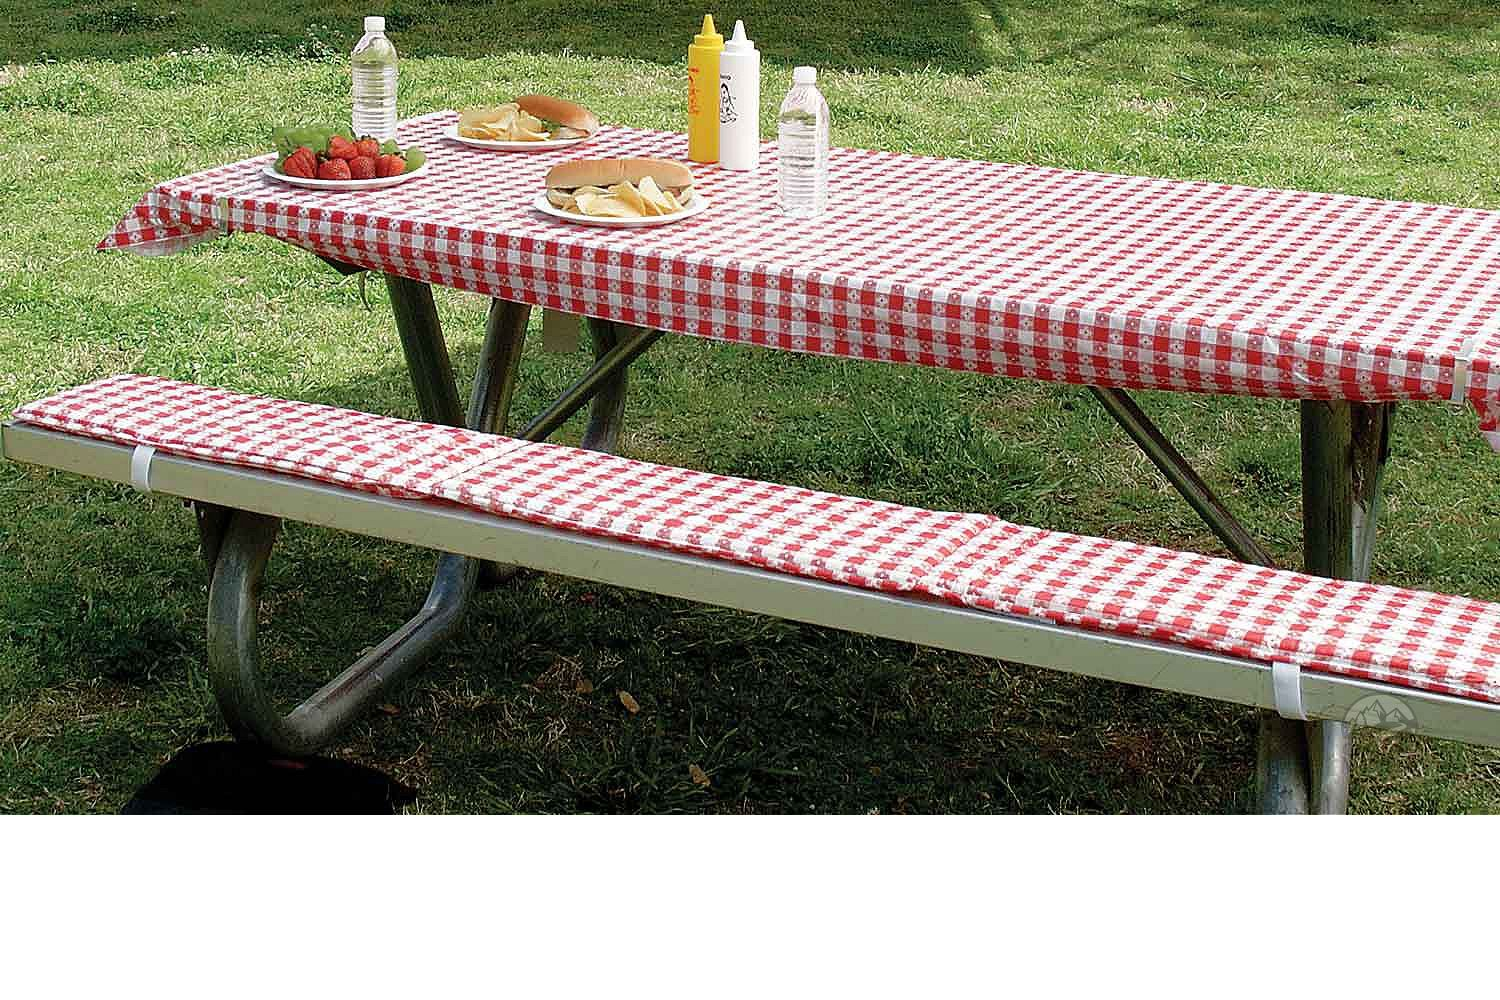 Table Cover Padded Bench Cushions Intersource Enterprises D16 243 Picnic Camping World Picnic Bench Covers Camping Supplies Picnic Table